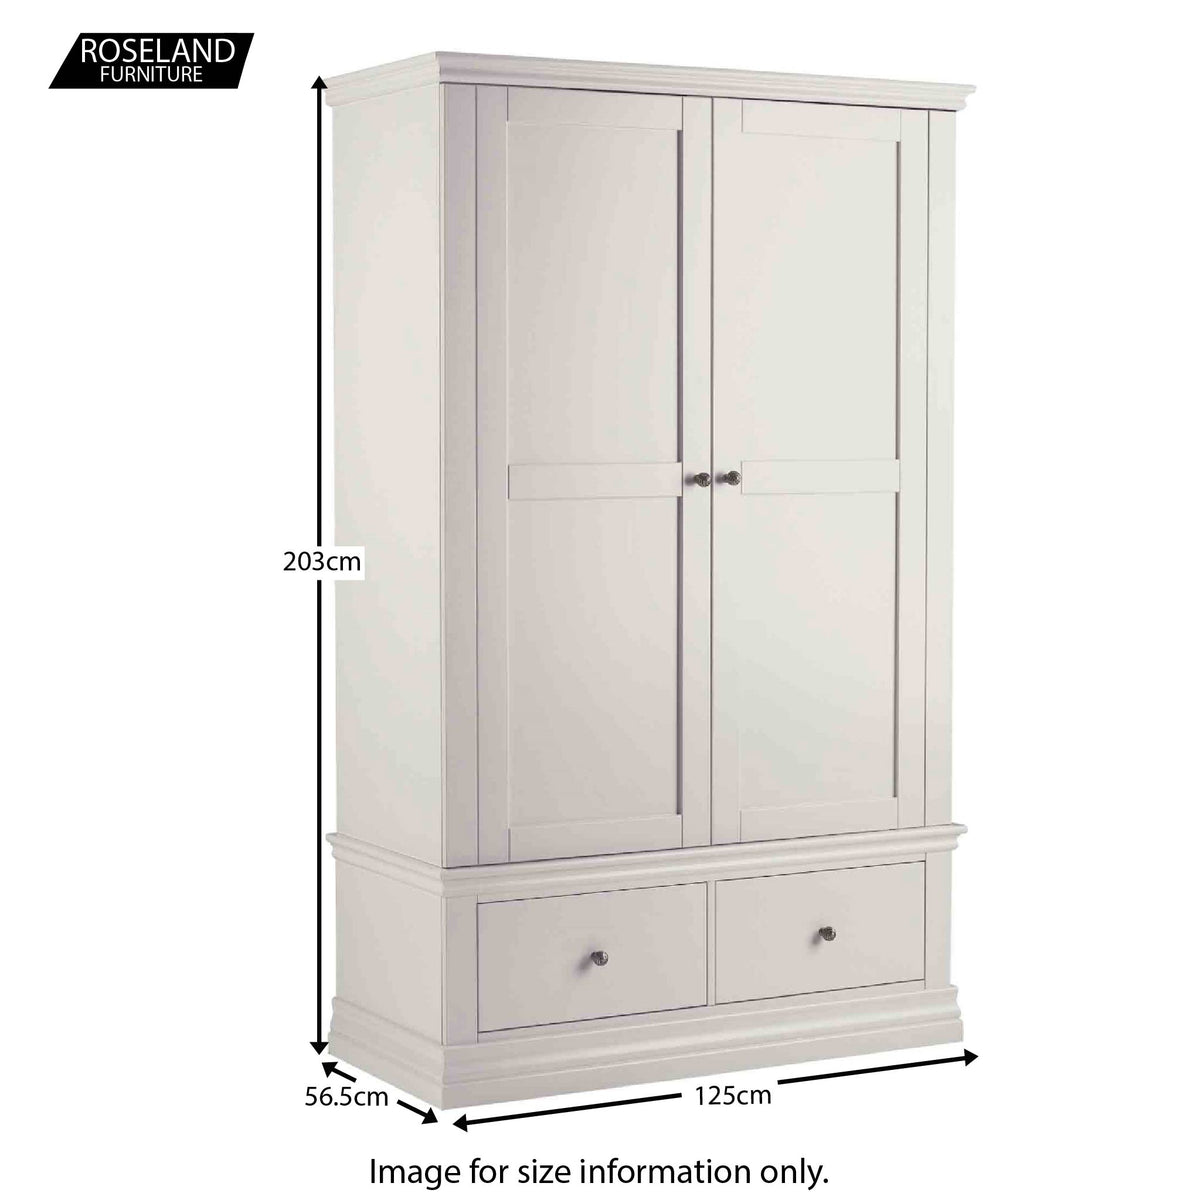 Dimensions from the Melrose Cotton White Double Wardrobe from Roseland Furniture